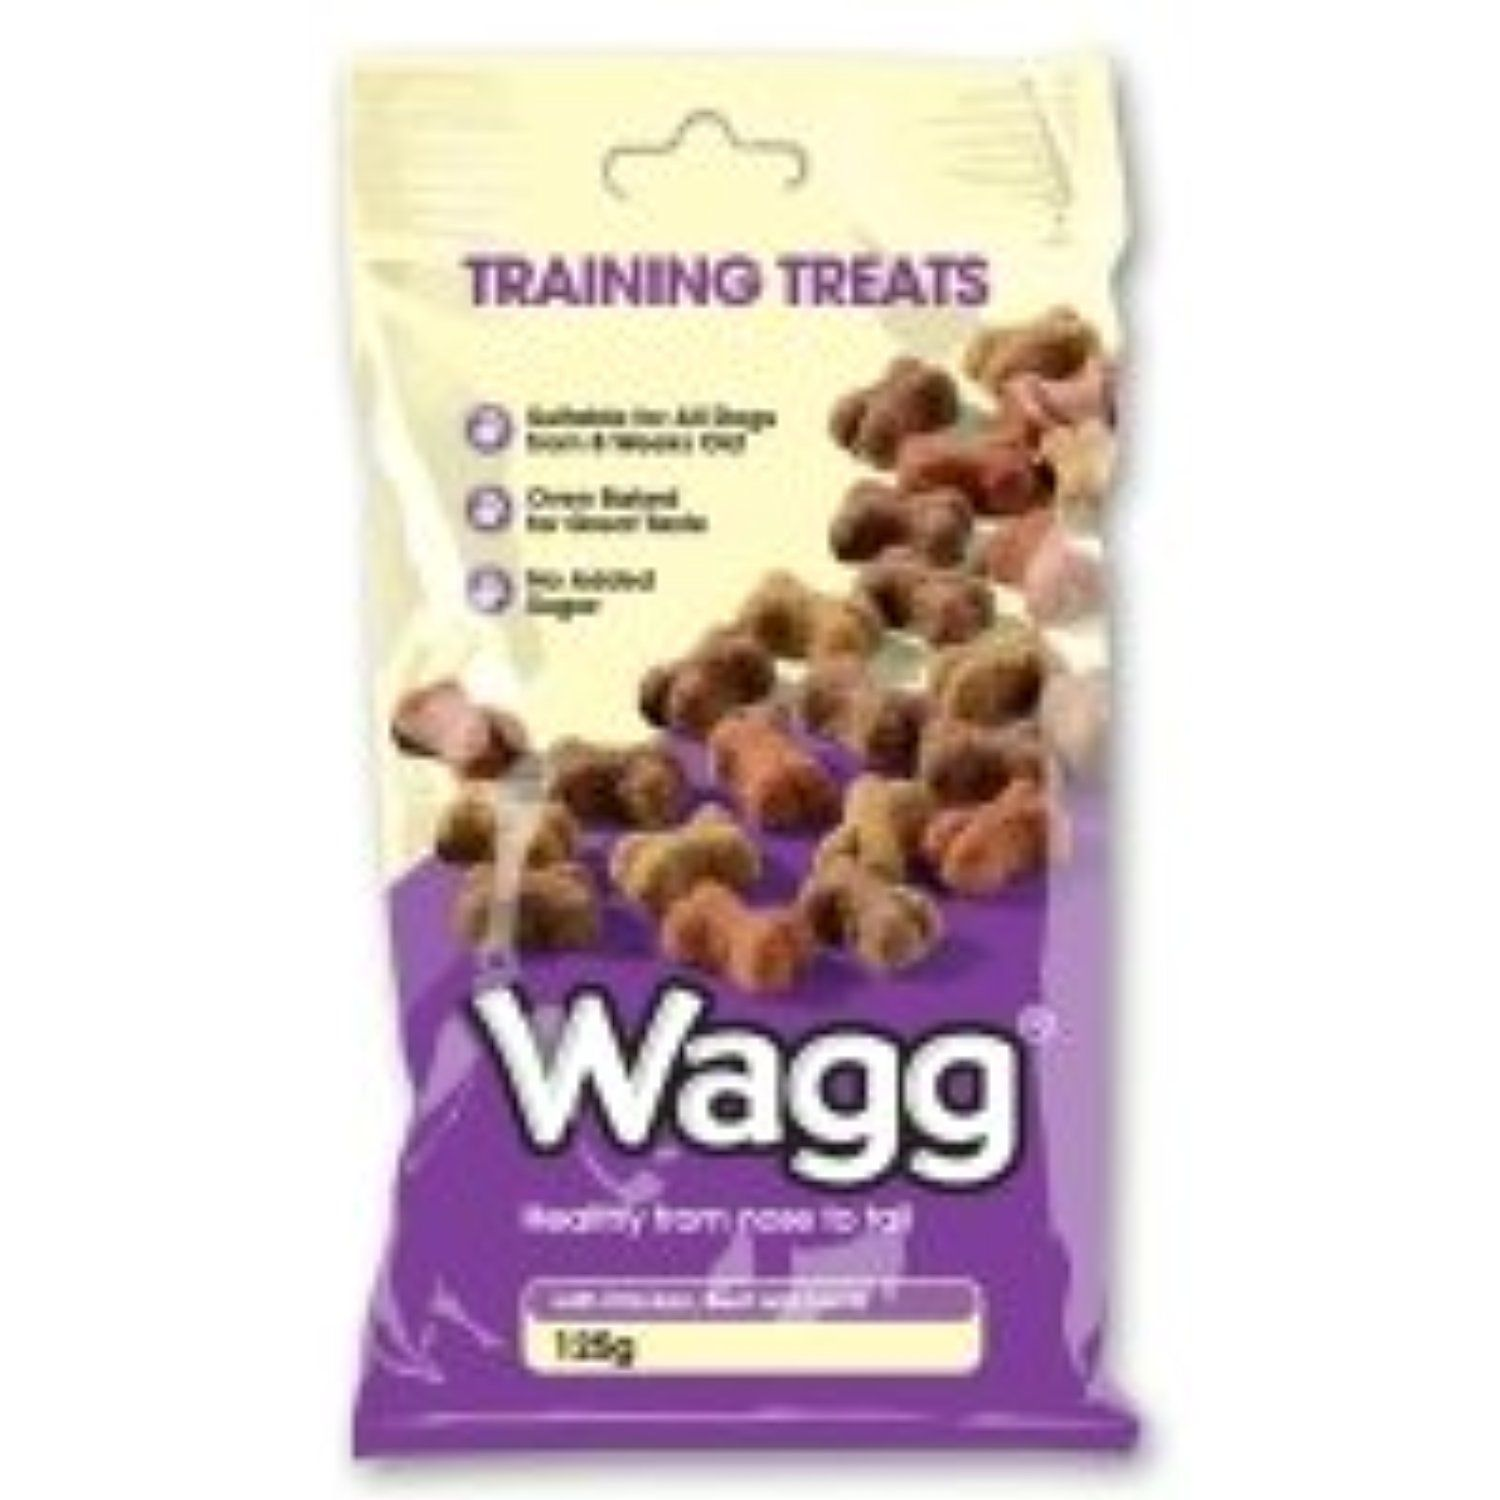 Wagg Training Treats Dog Treats 125g You can see this